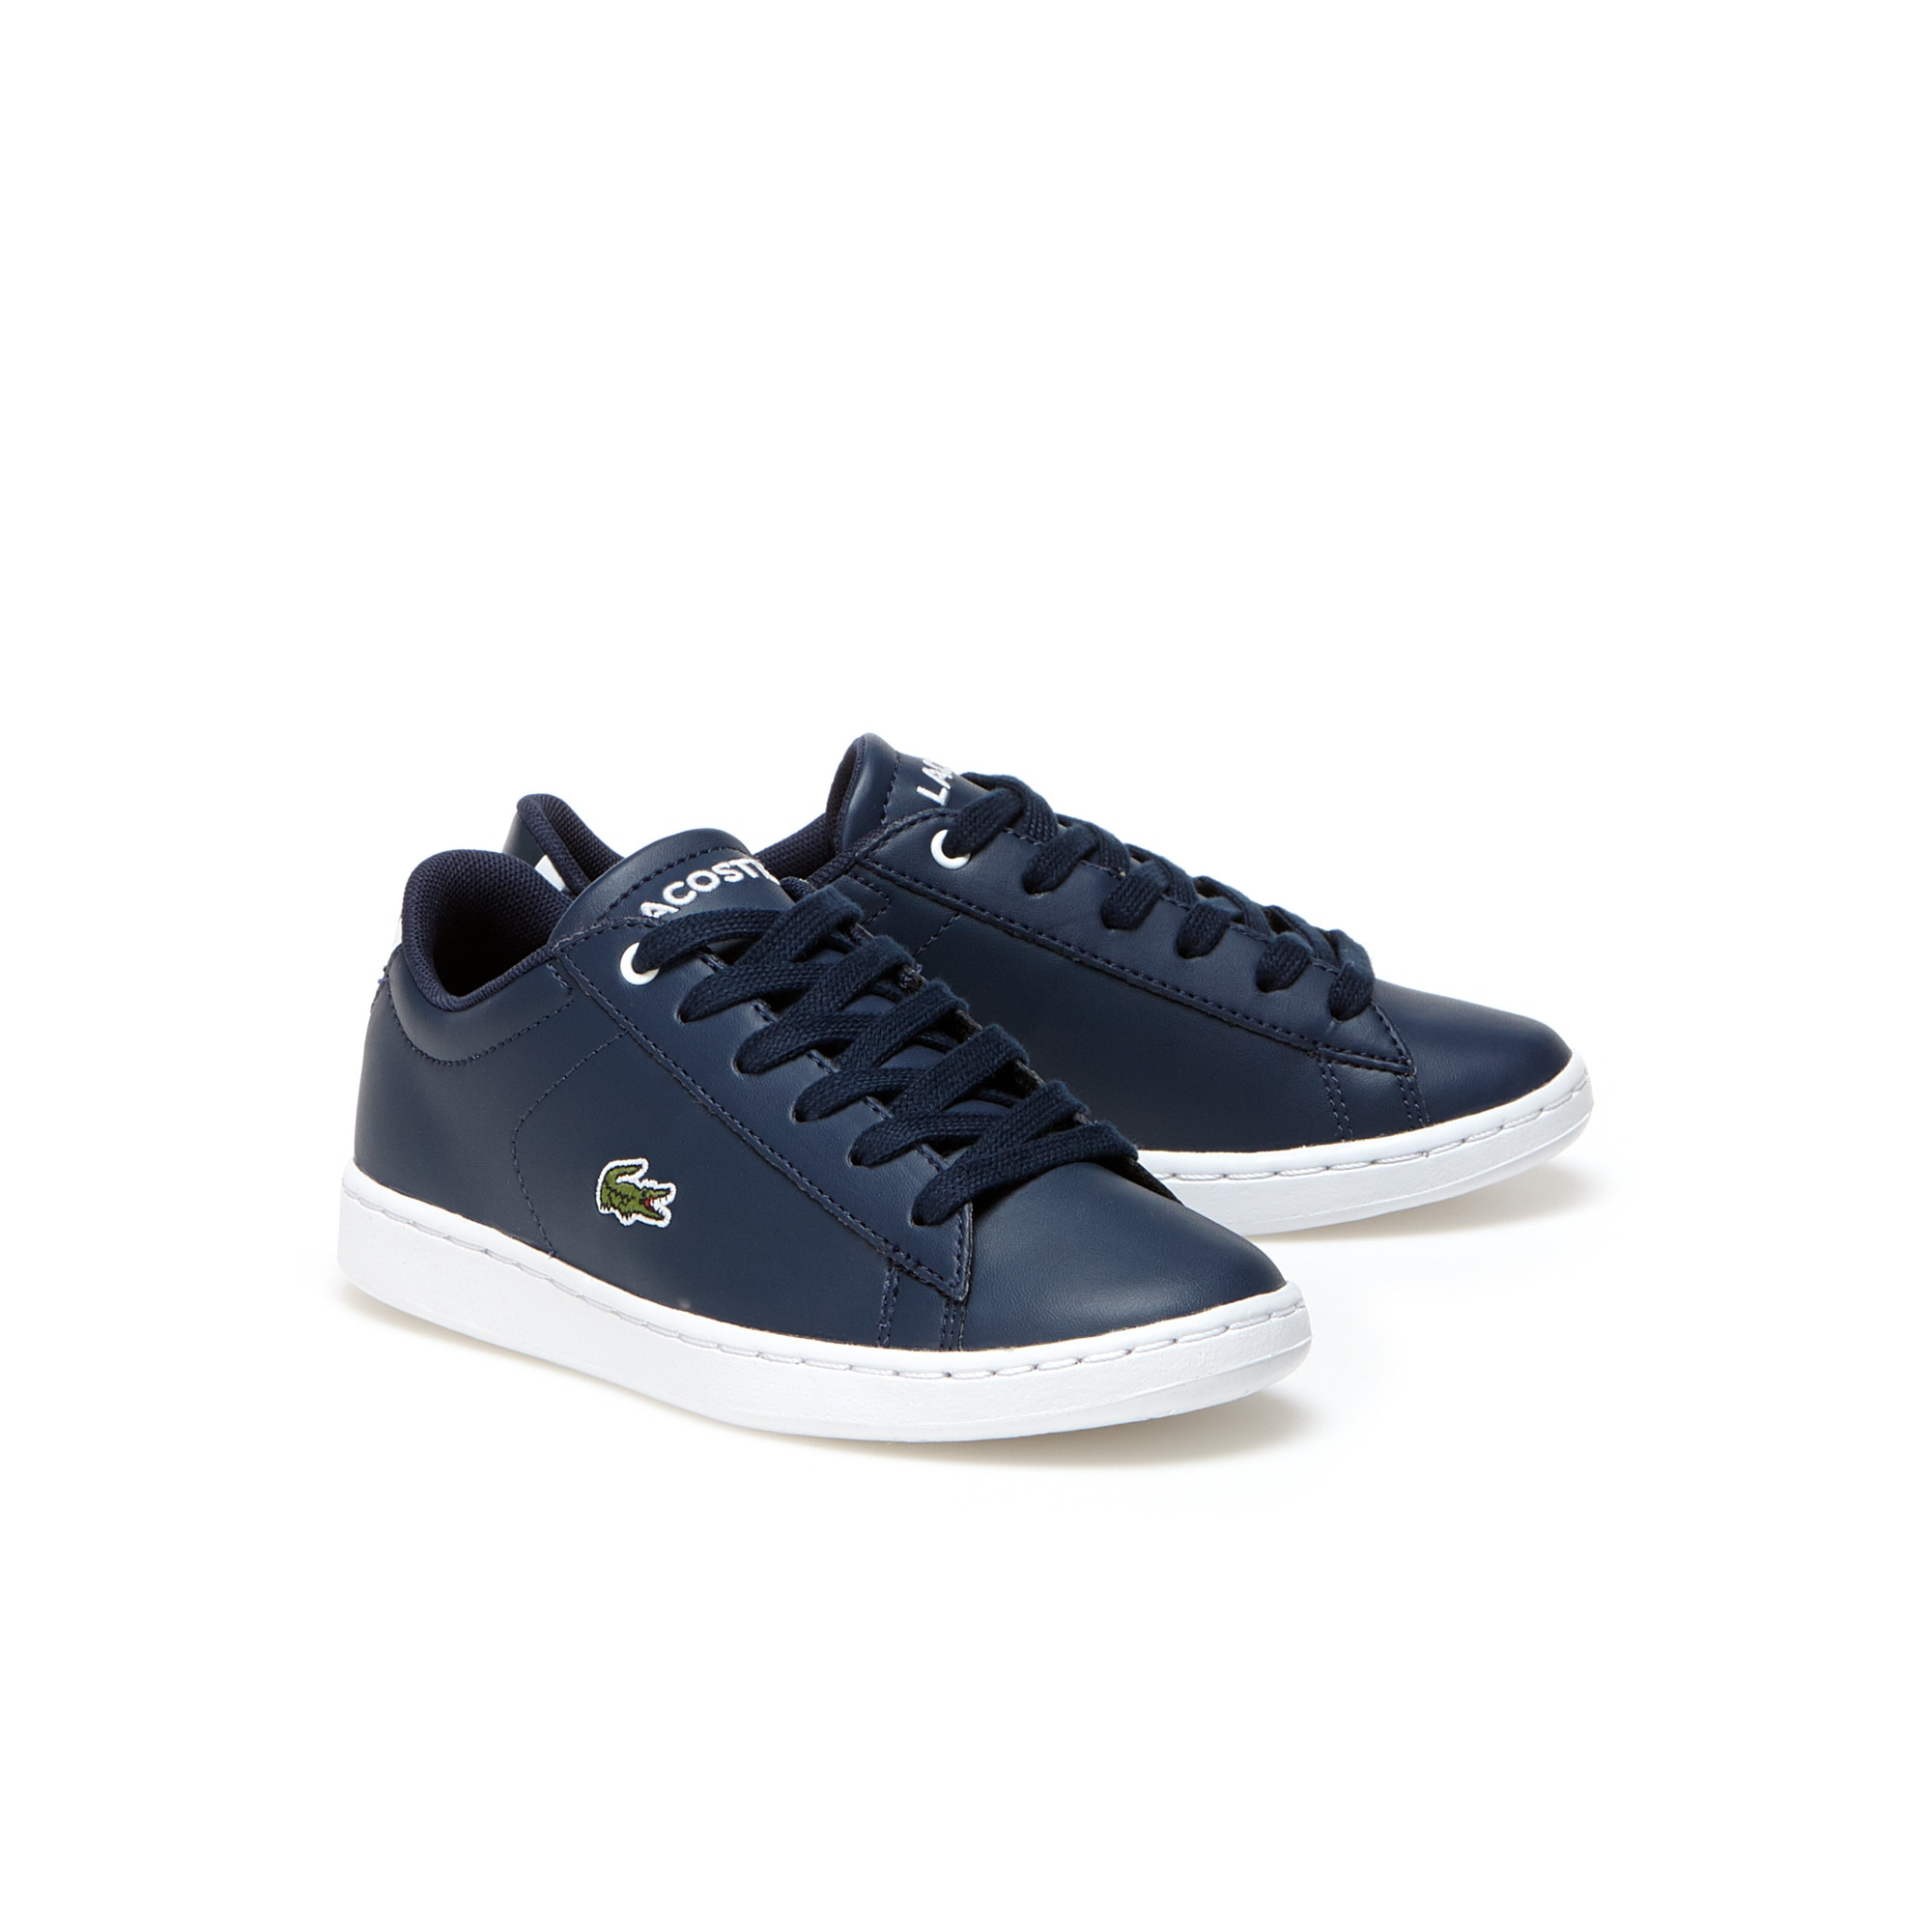 Children's Carnaby Evo Synthethic Trainers